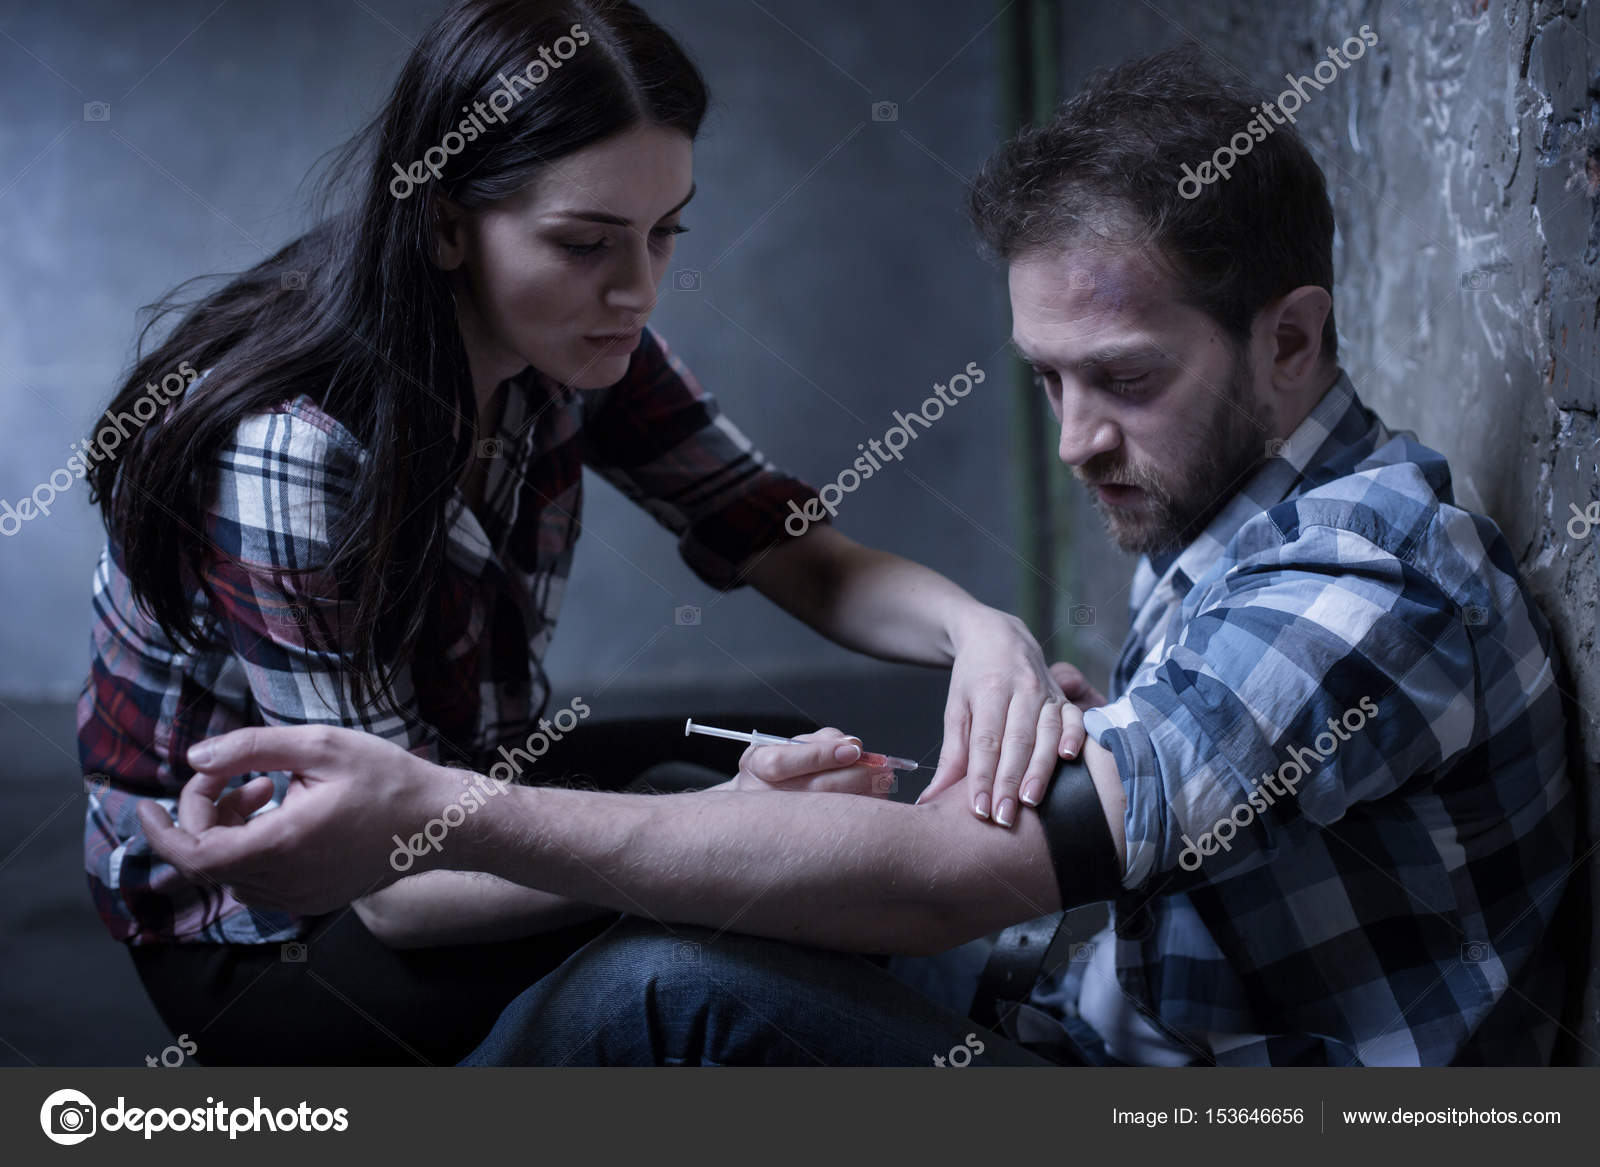 obsessed junkies making heroin injection indoors stock photo